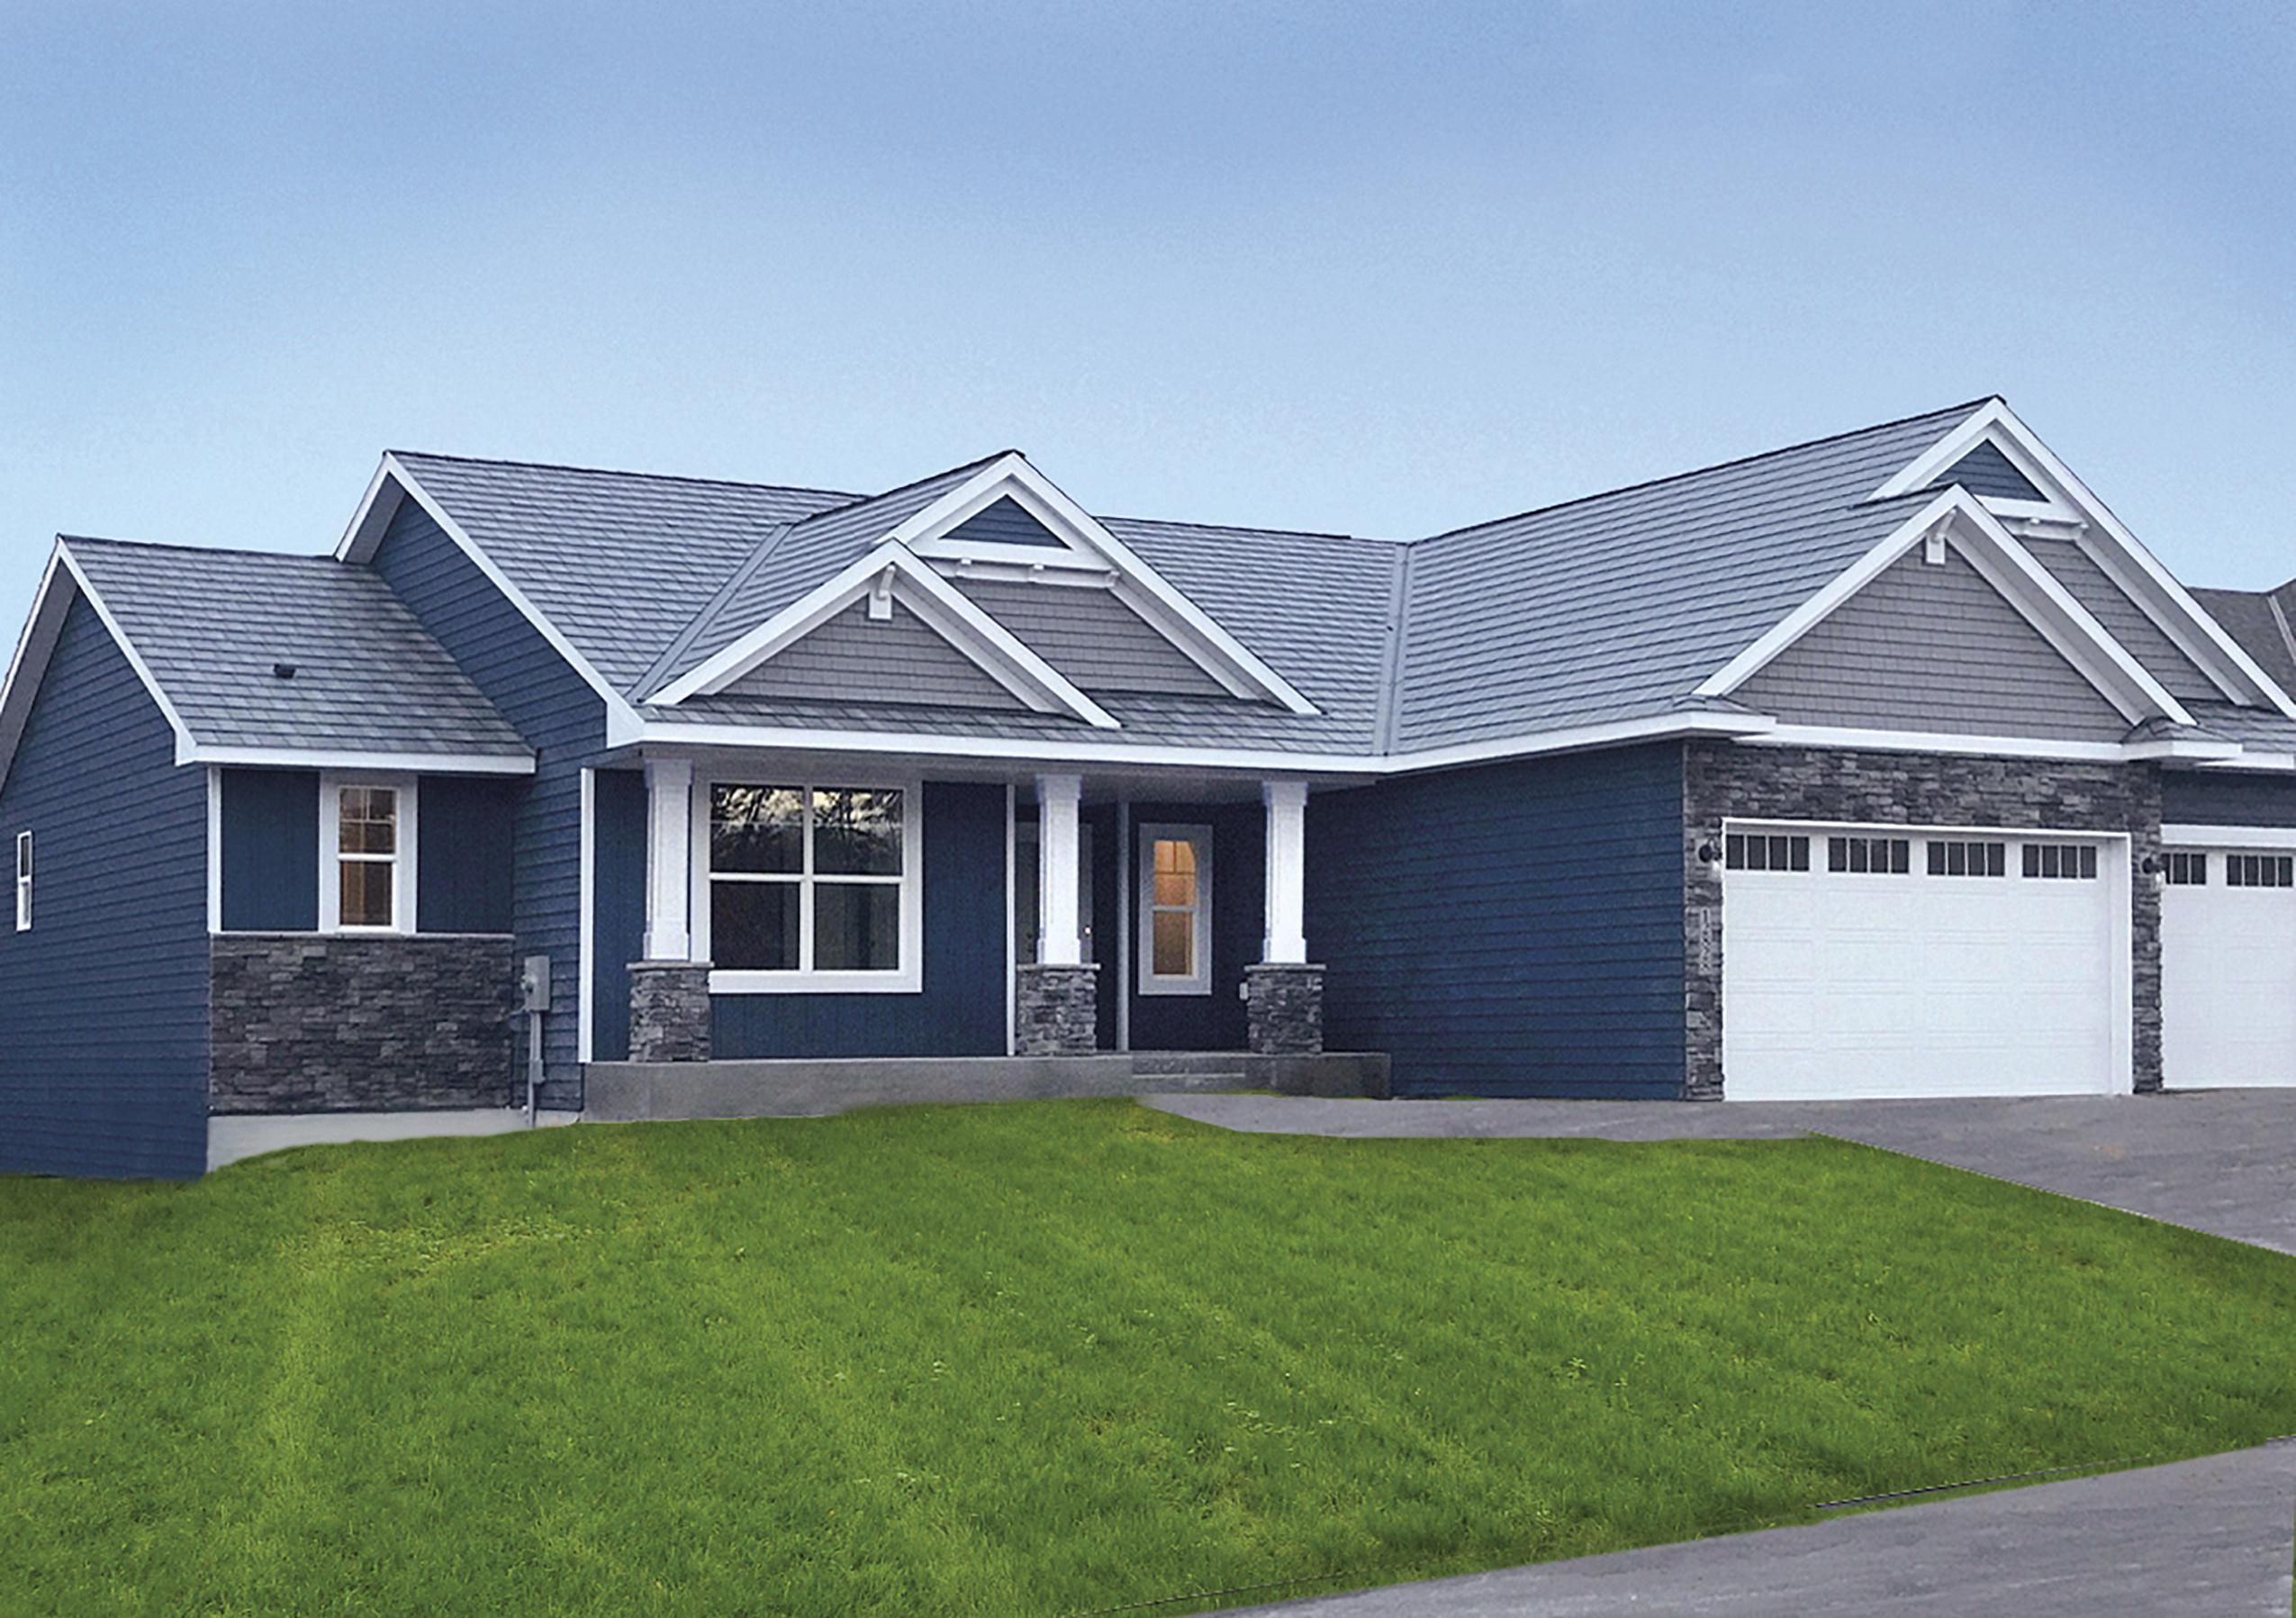 Pin By Lila Penland On House Renovation In 2020 House Exterior Blue Steel Siding Metal Roof Houses